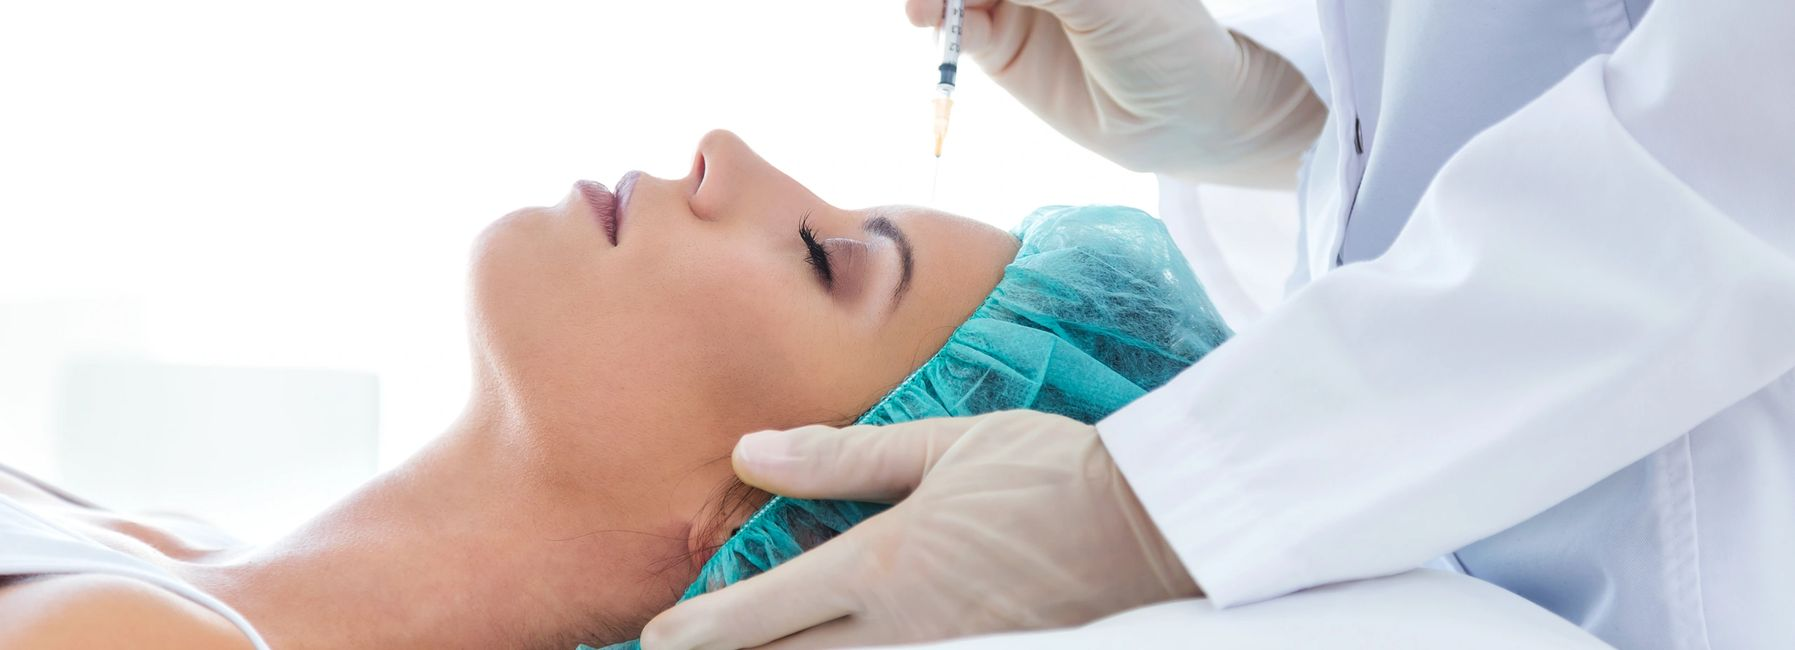 The effects of Botox can subtly smooth and soften the skin, restoring a more youthful complexion.